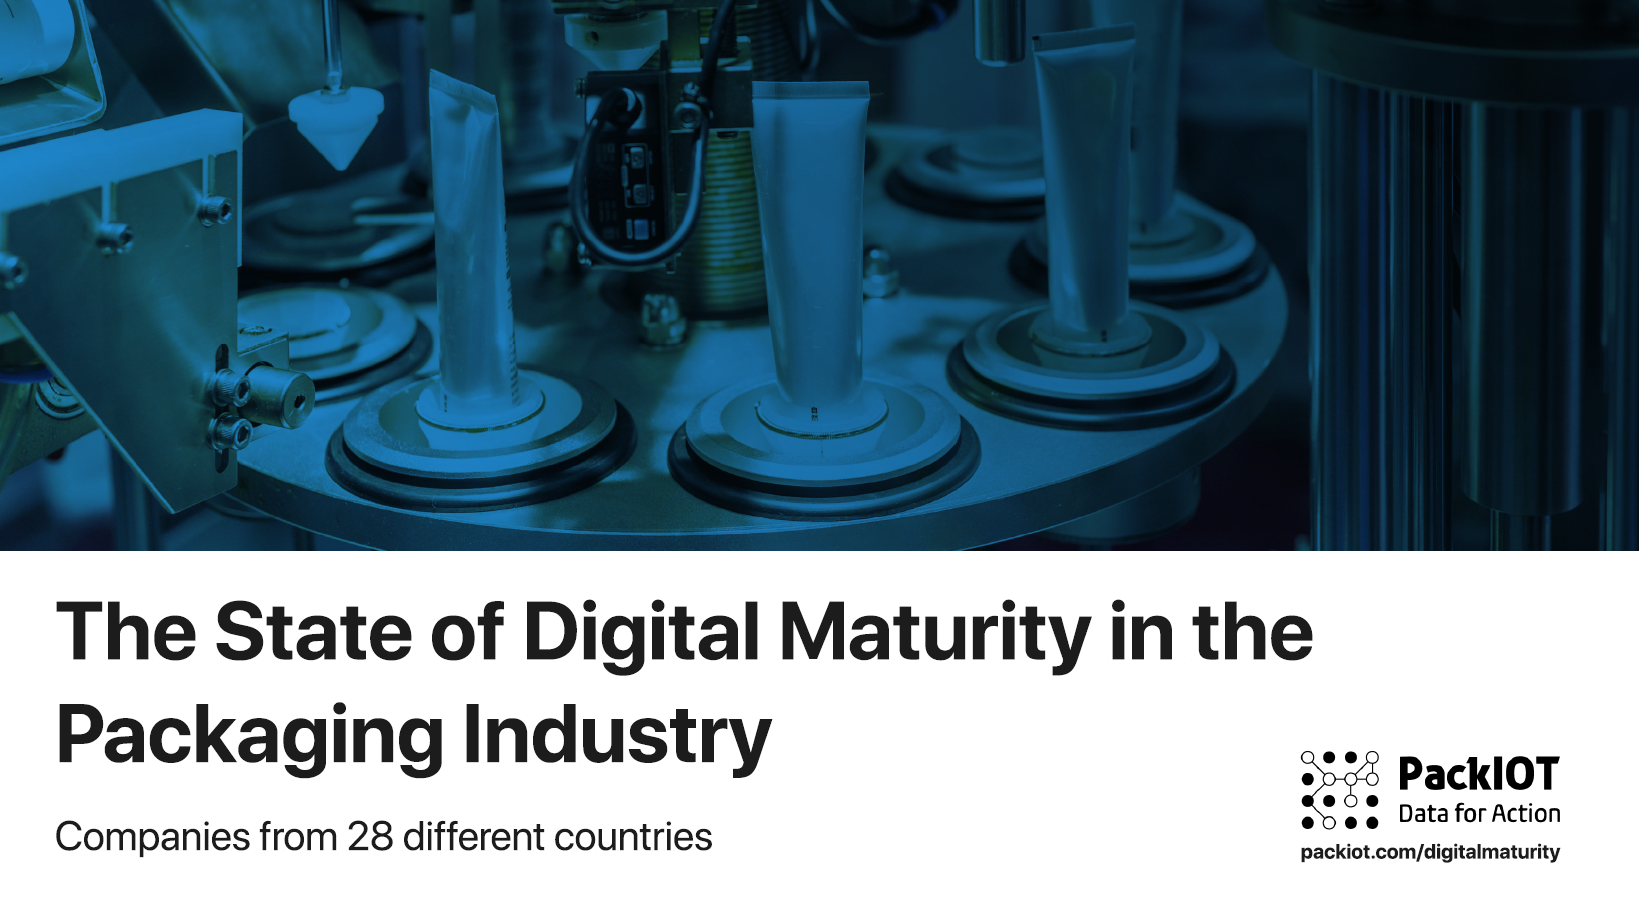 Digital Maturity in the Packaging Industry has a long way to go, tells international report